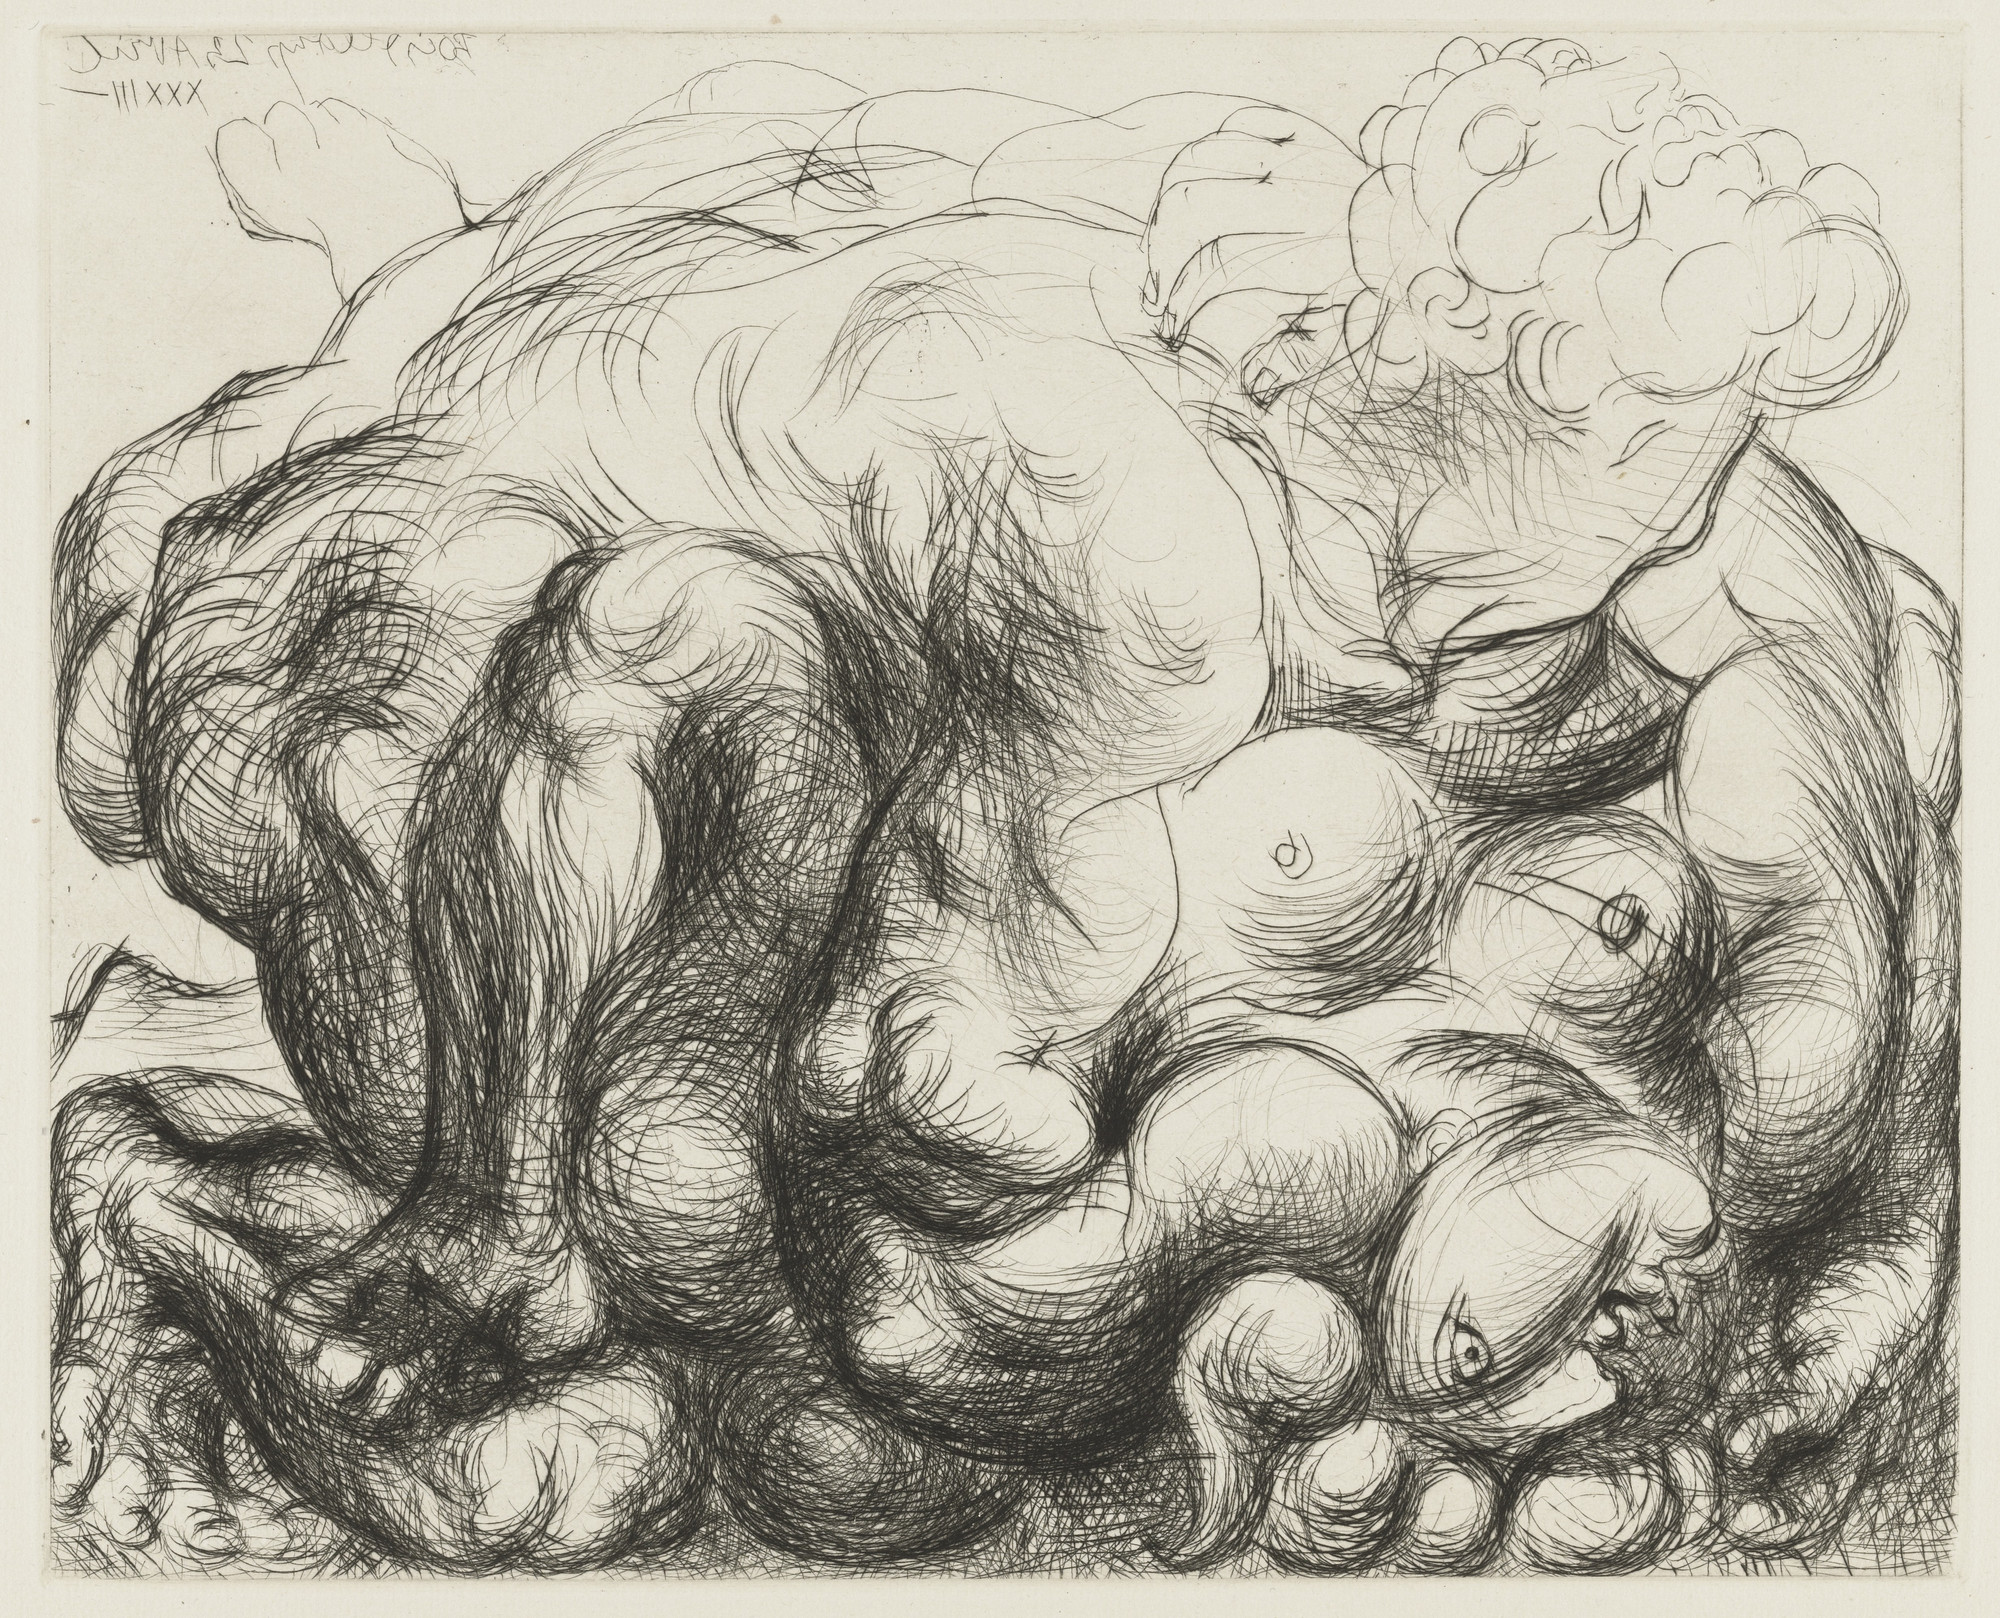 Pablo Picasso. The Embrace III (L'Étreinte. III) from the Vollard Suite (Suite Vollard). 1933, published 1939